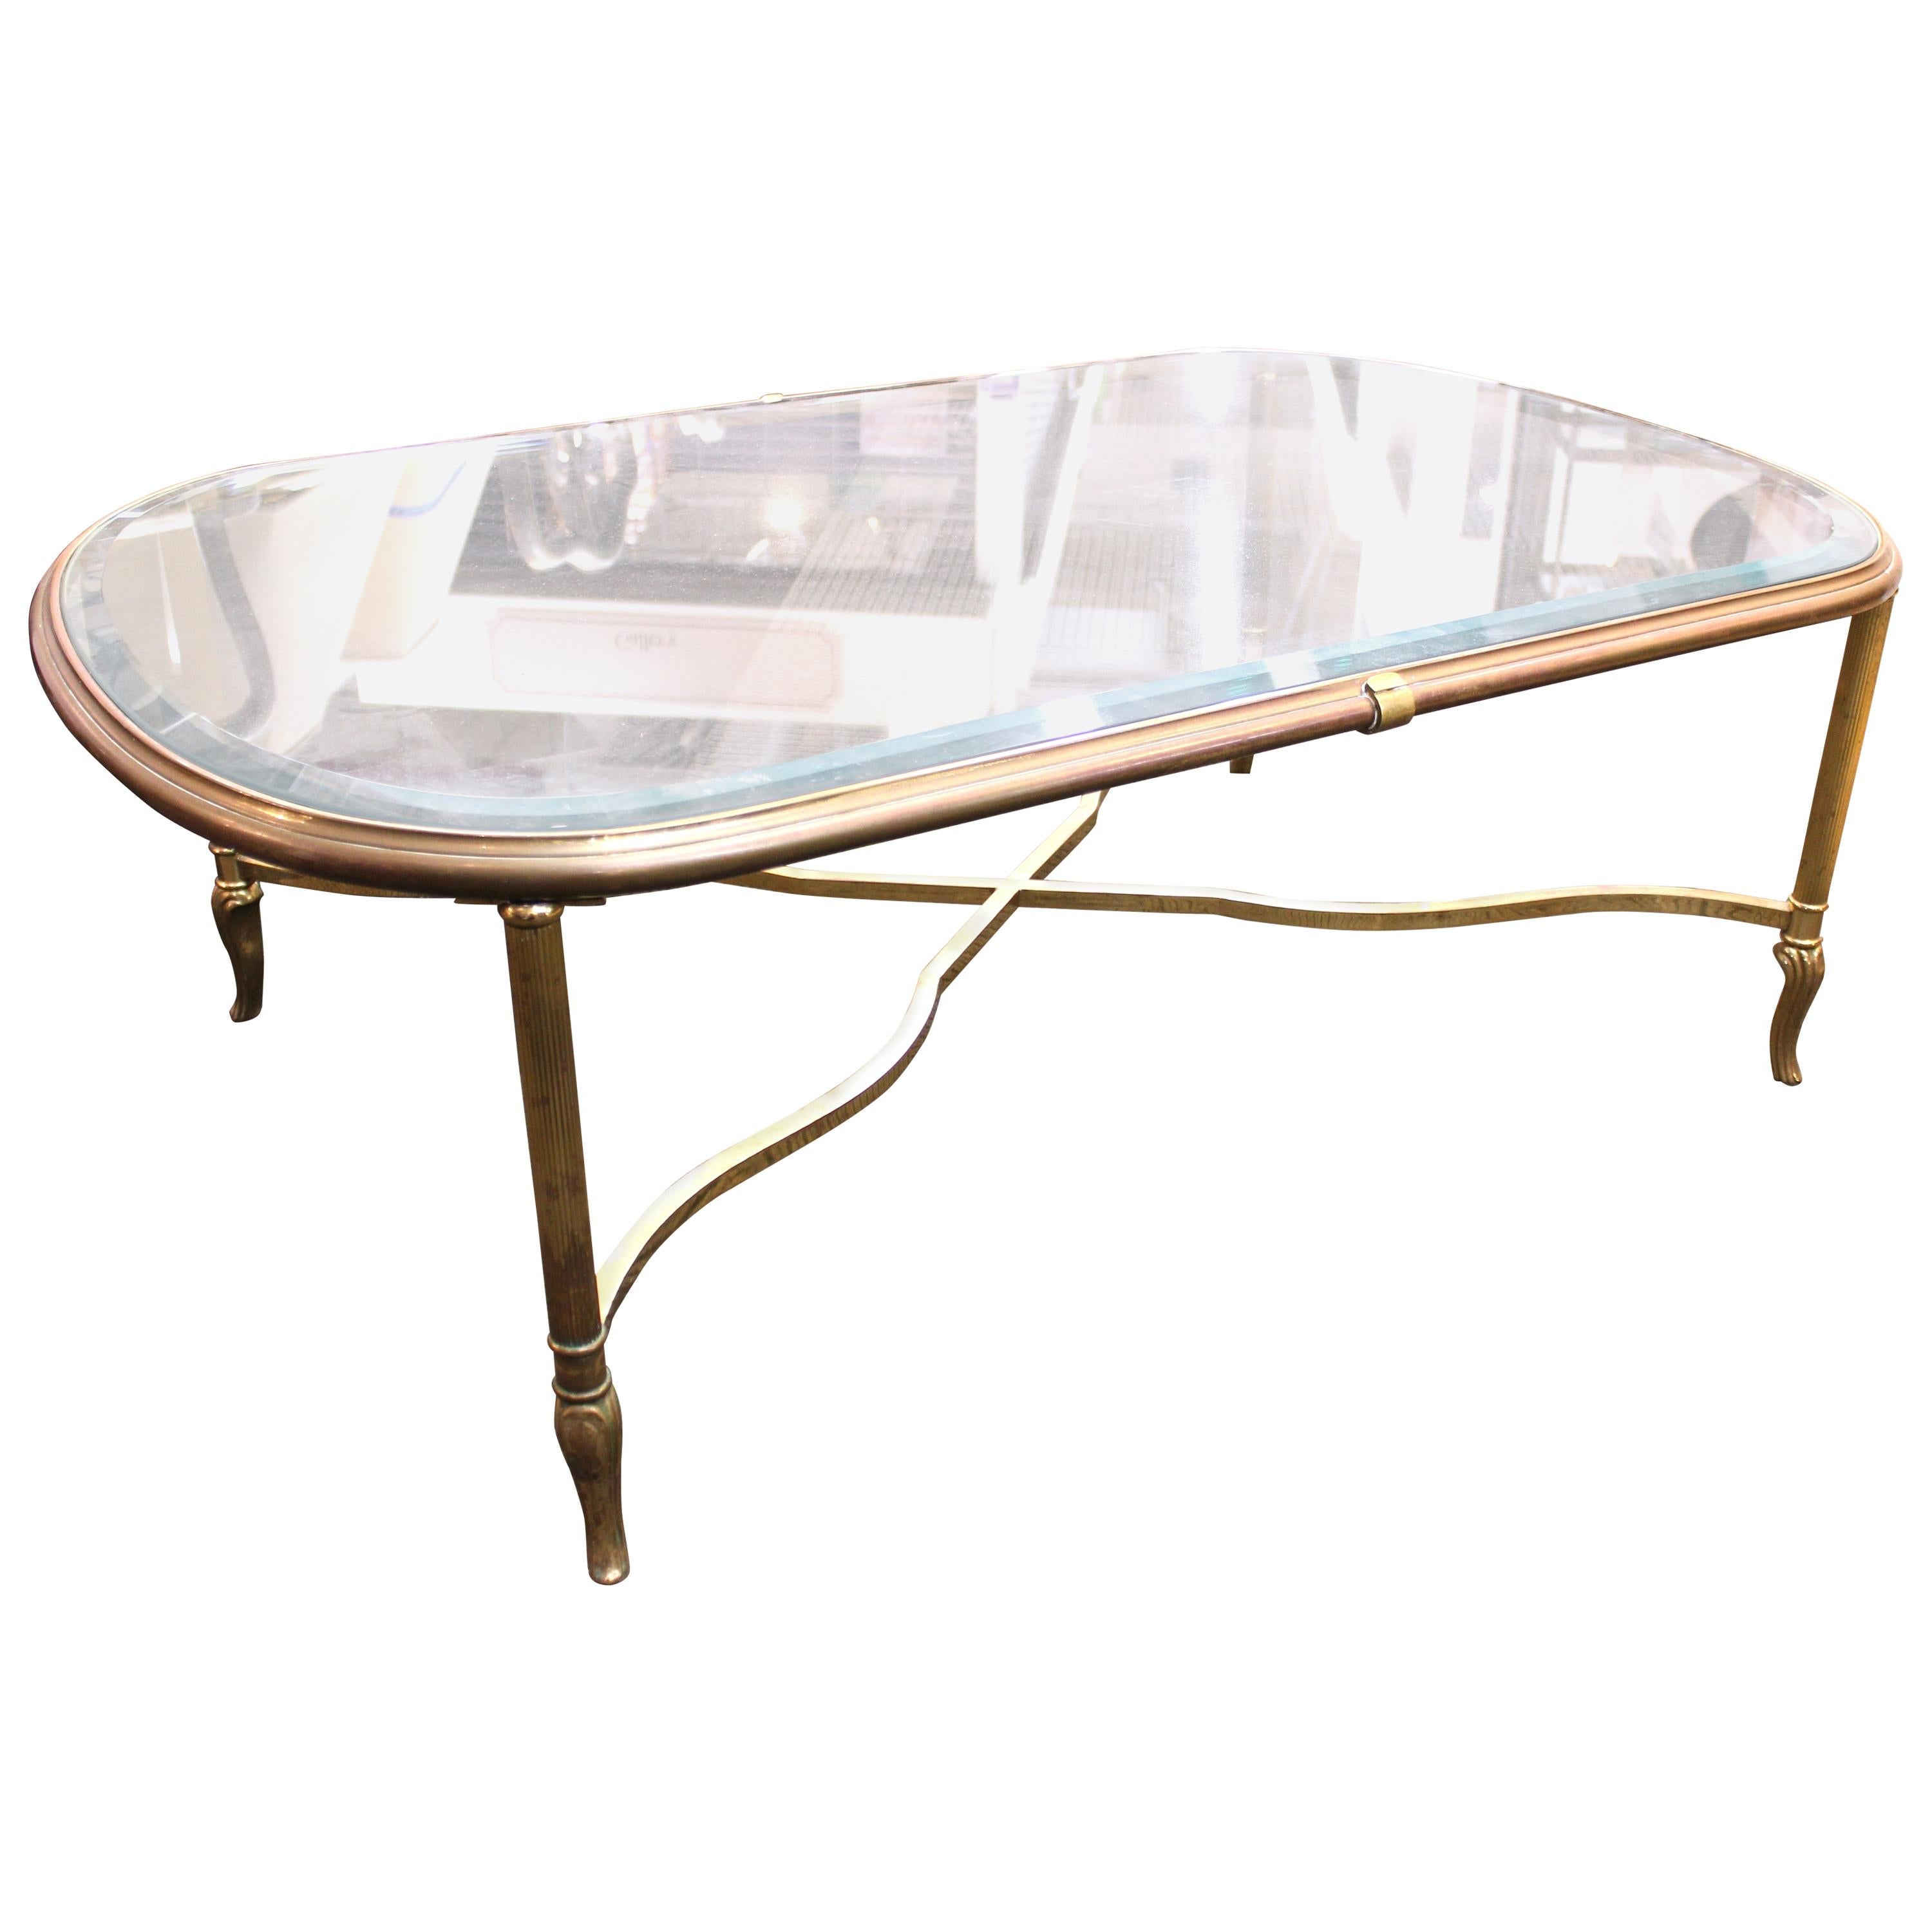 Midcentury Glass Top Coffee Table with Classical Gilt Metal Frame